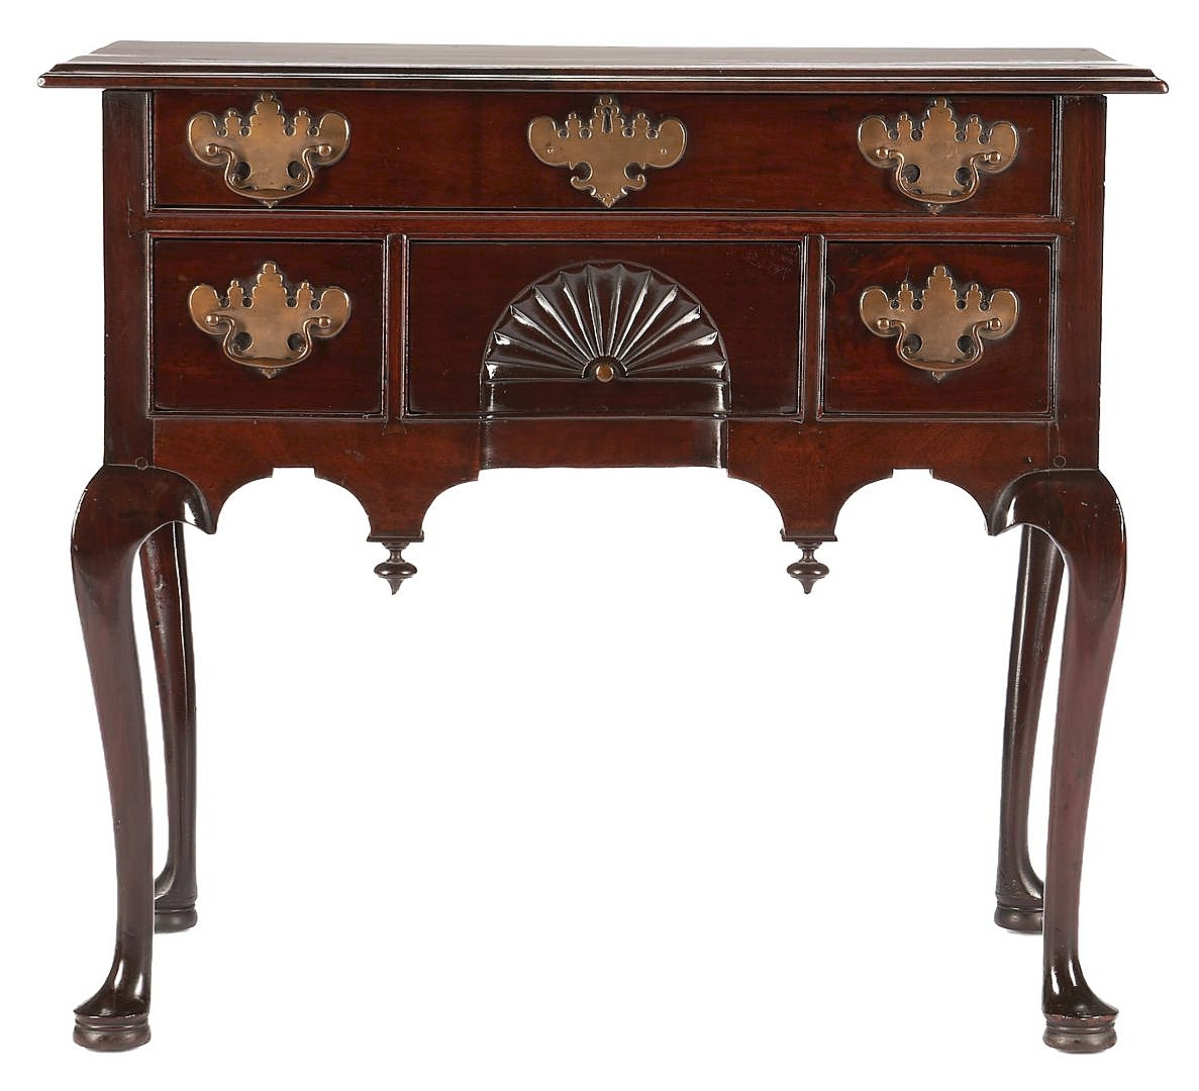 Prominent Twentieth Century Americana collector Charles K. Davis purchased this American Queen Anne mahogany lowboy from Israel Sack. It then passed down to his son, Charles K. Davis Jr, whose estate supplied about 20 pieces of choice American furniture to the sale. This New England example dating to the Eighteenth Century sold for $66,000.